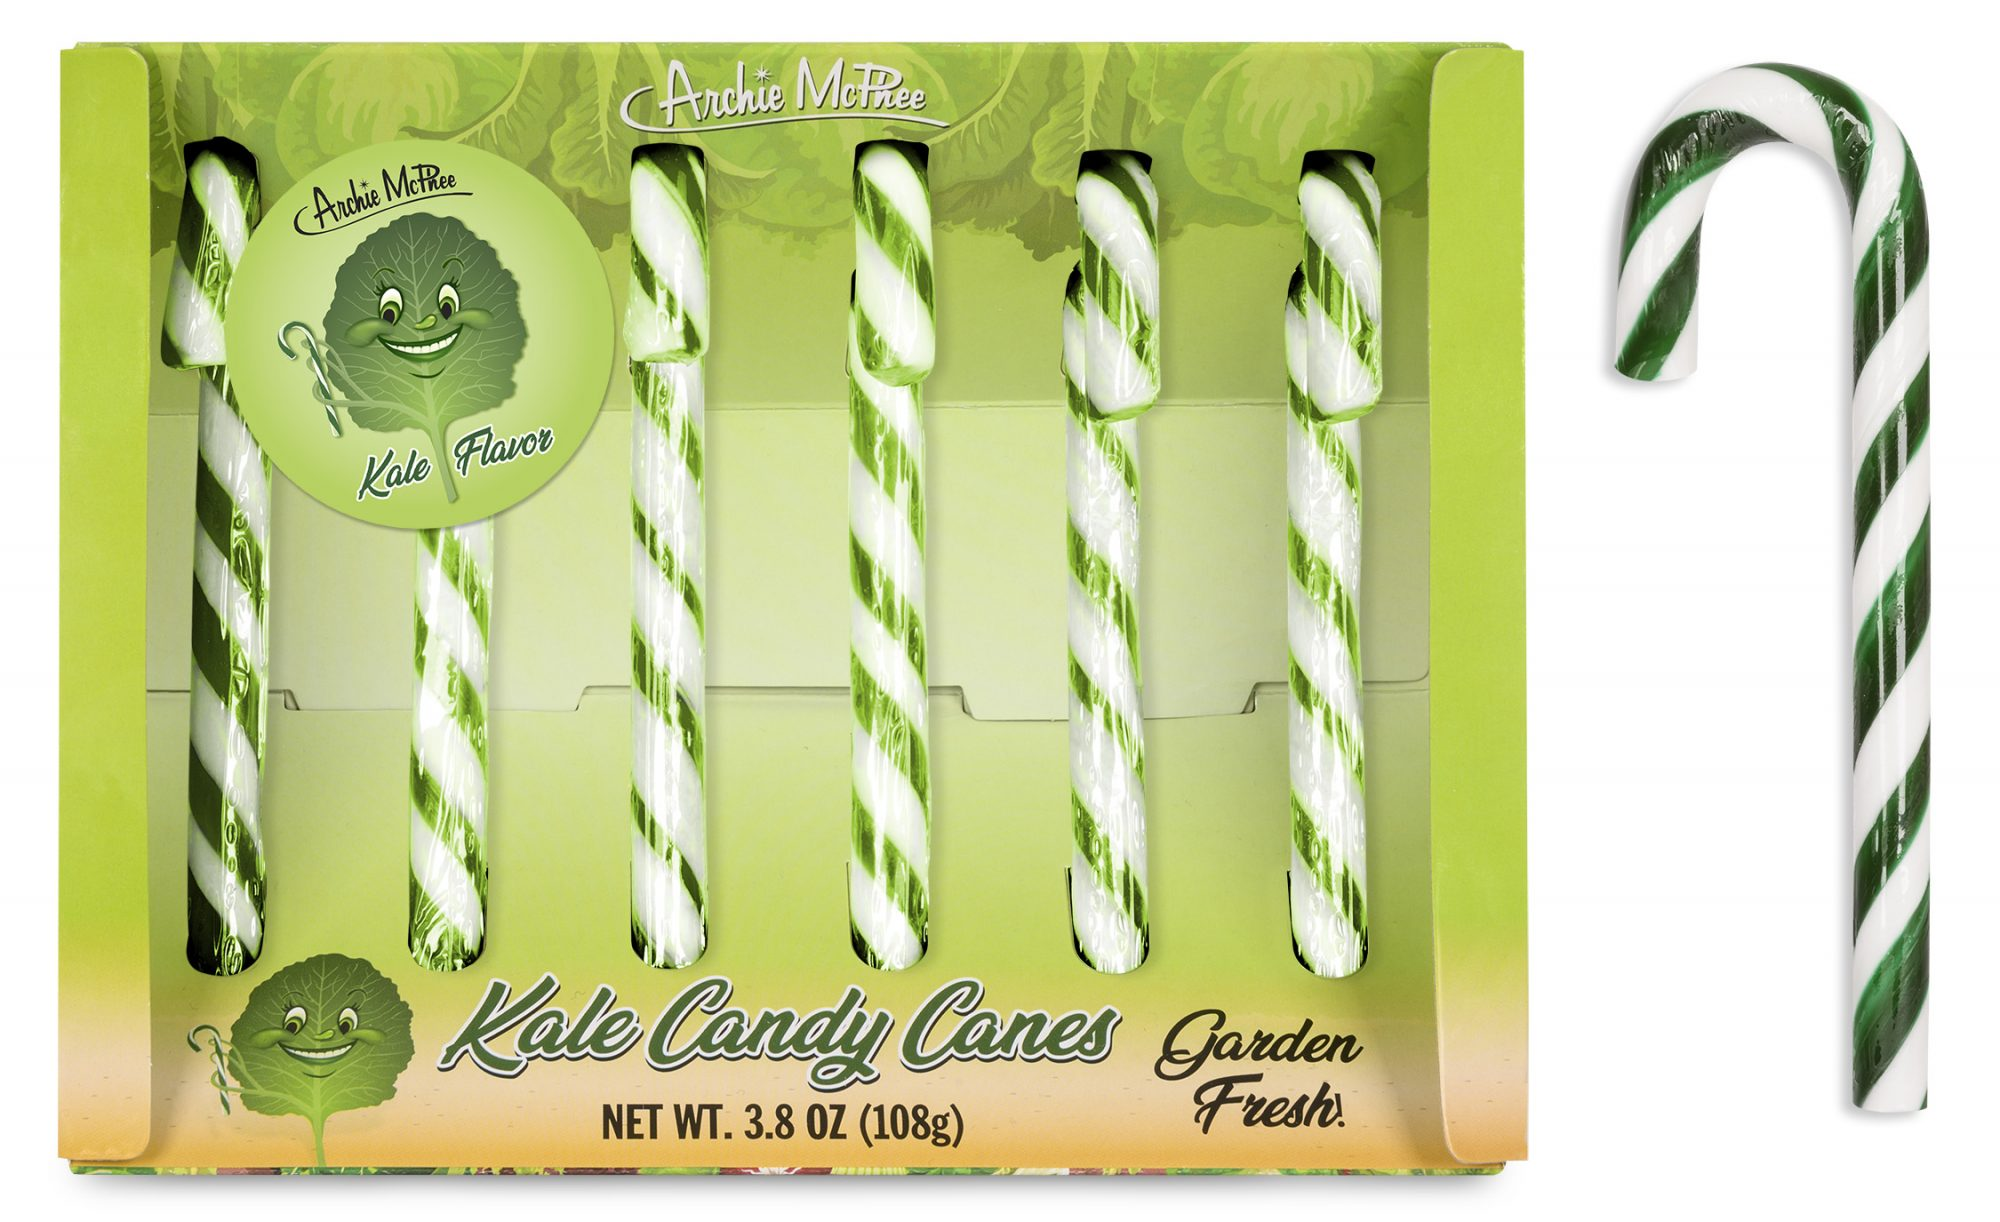 Archie McPhee Kale Candy Canes